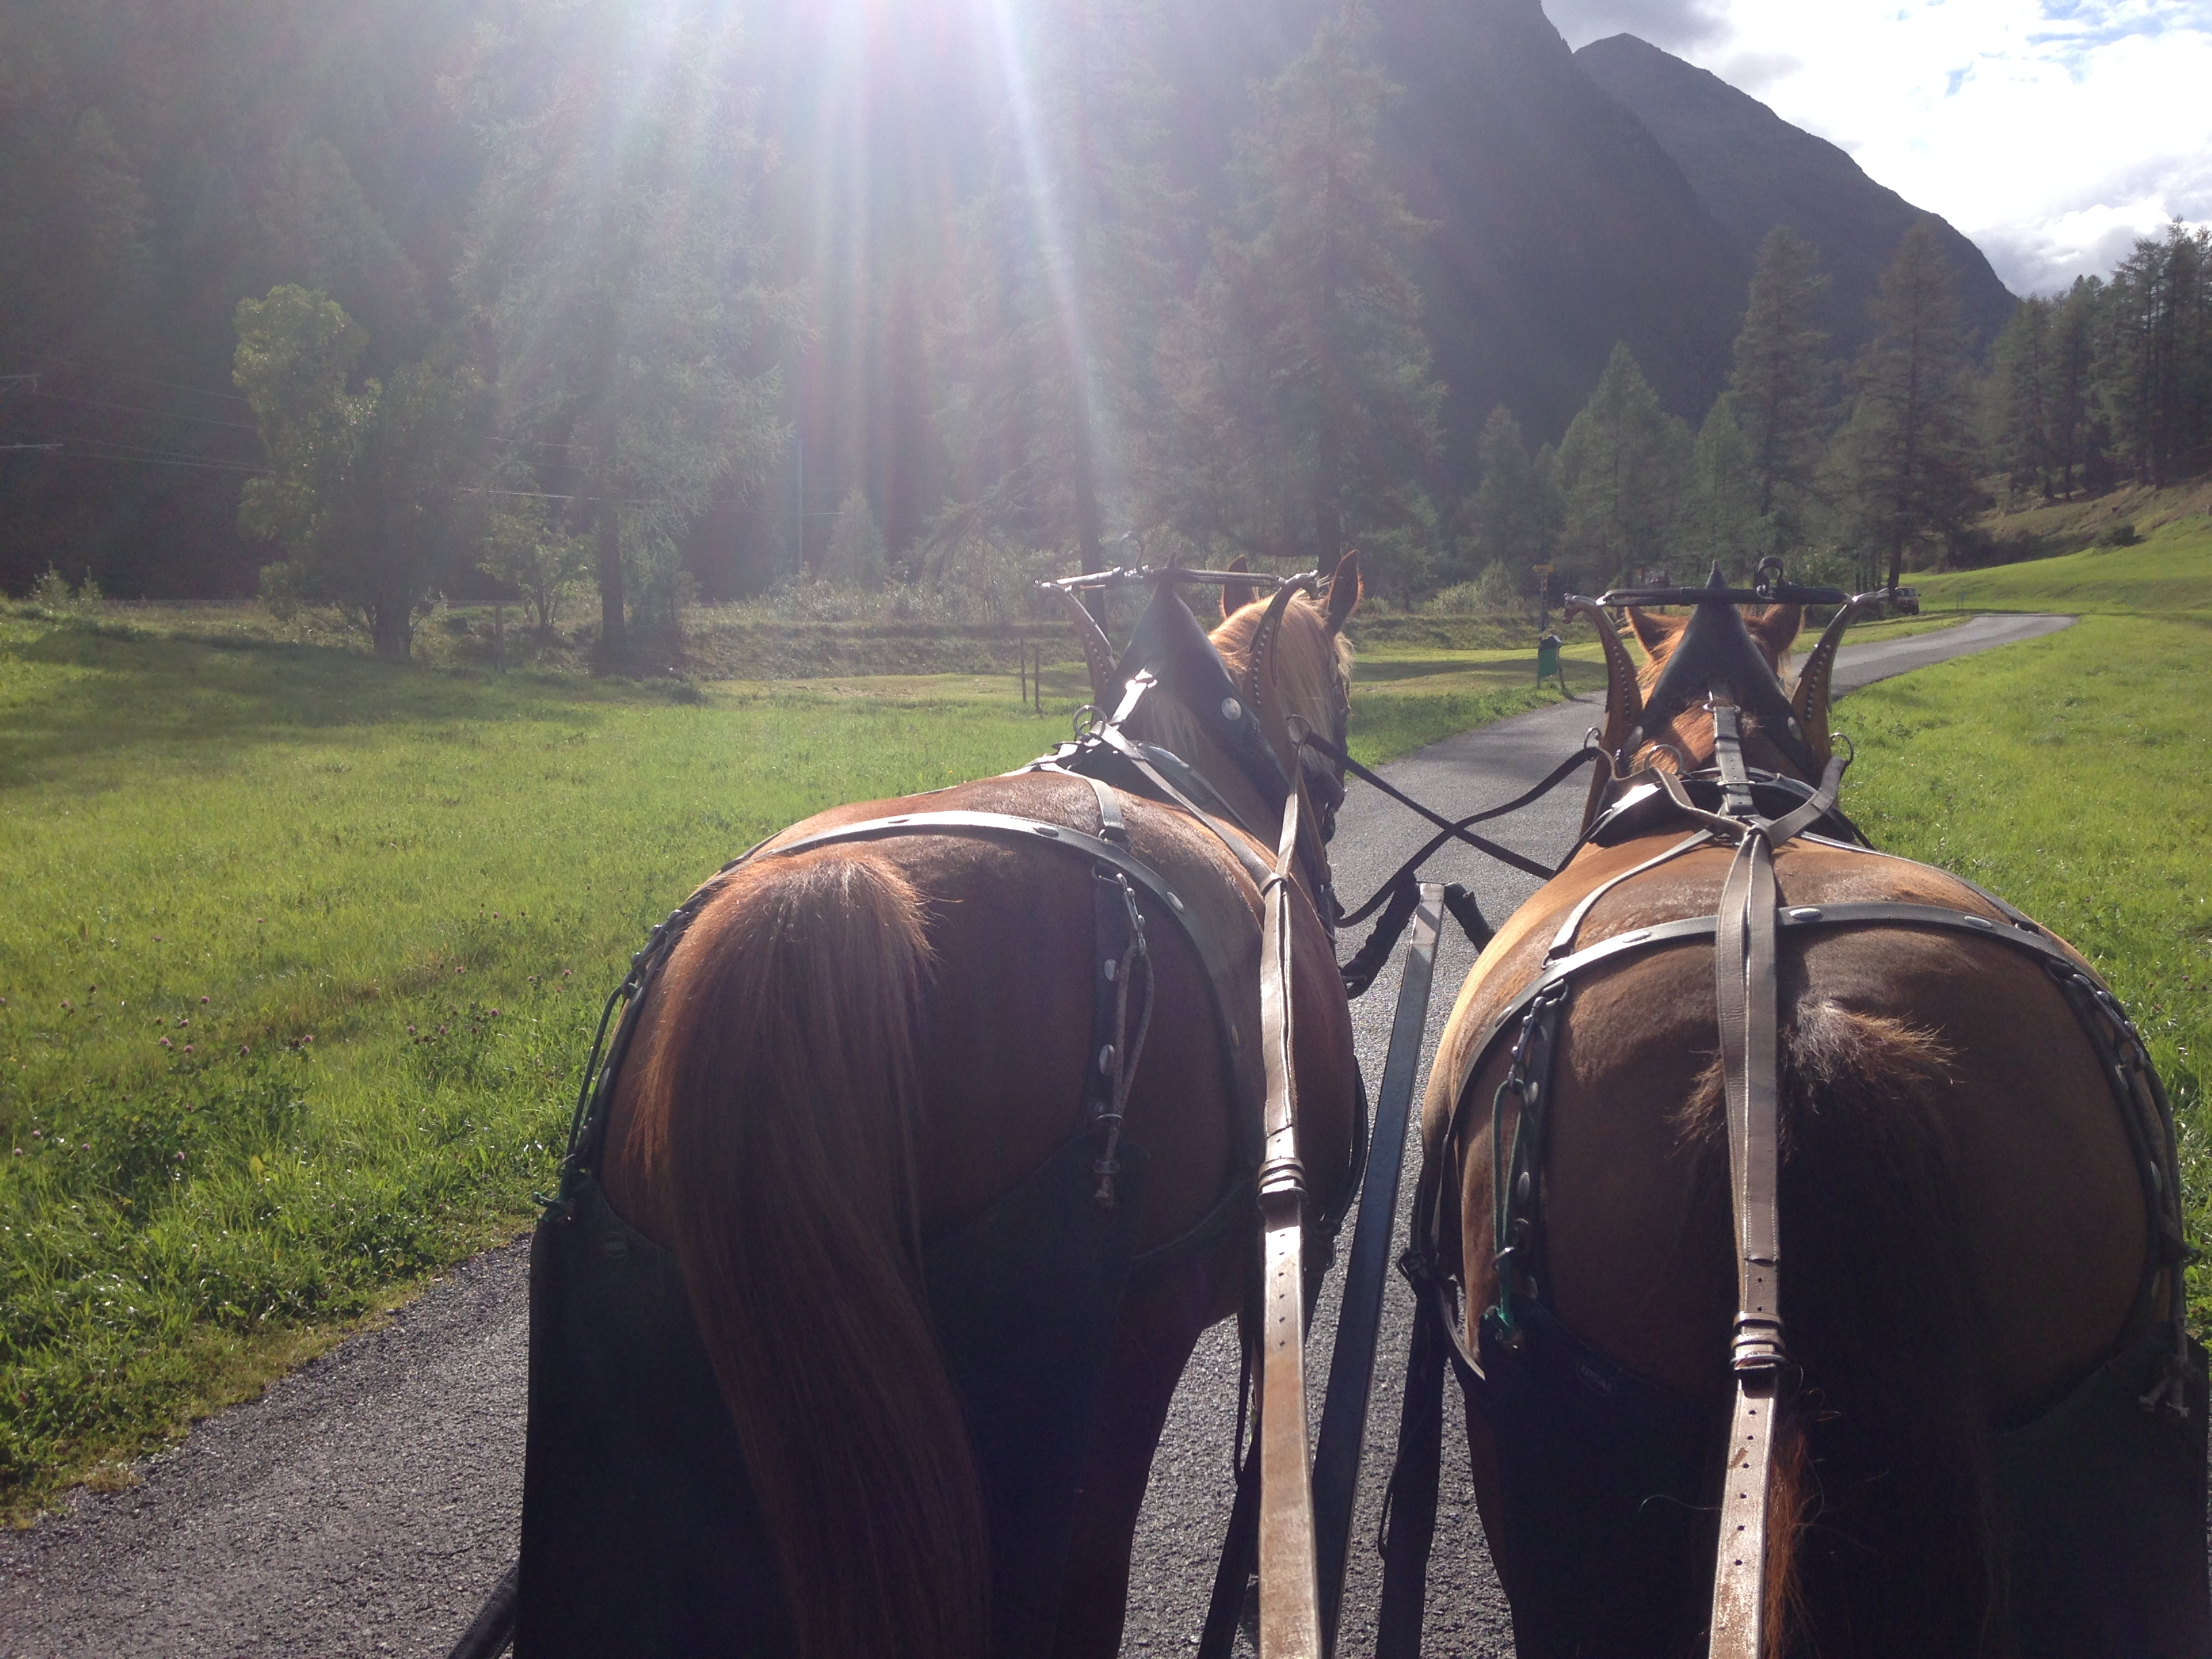 Horse-drawn carriage rides into the Val Bever/Spinas